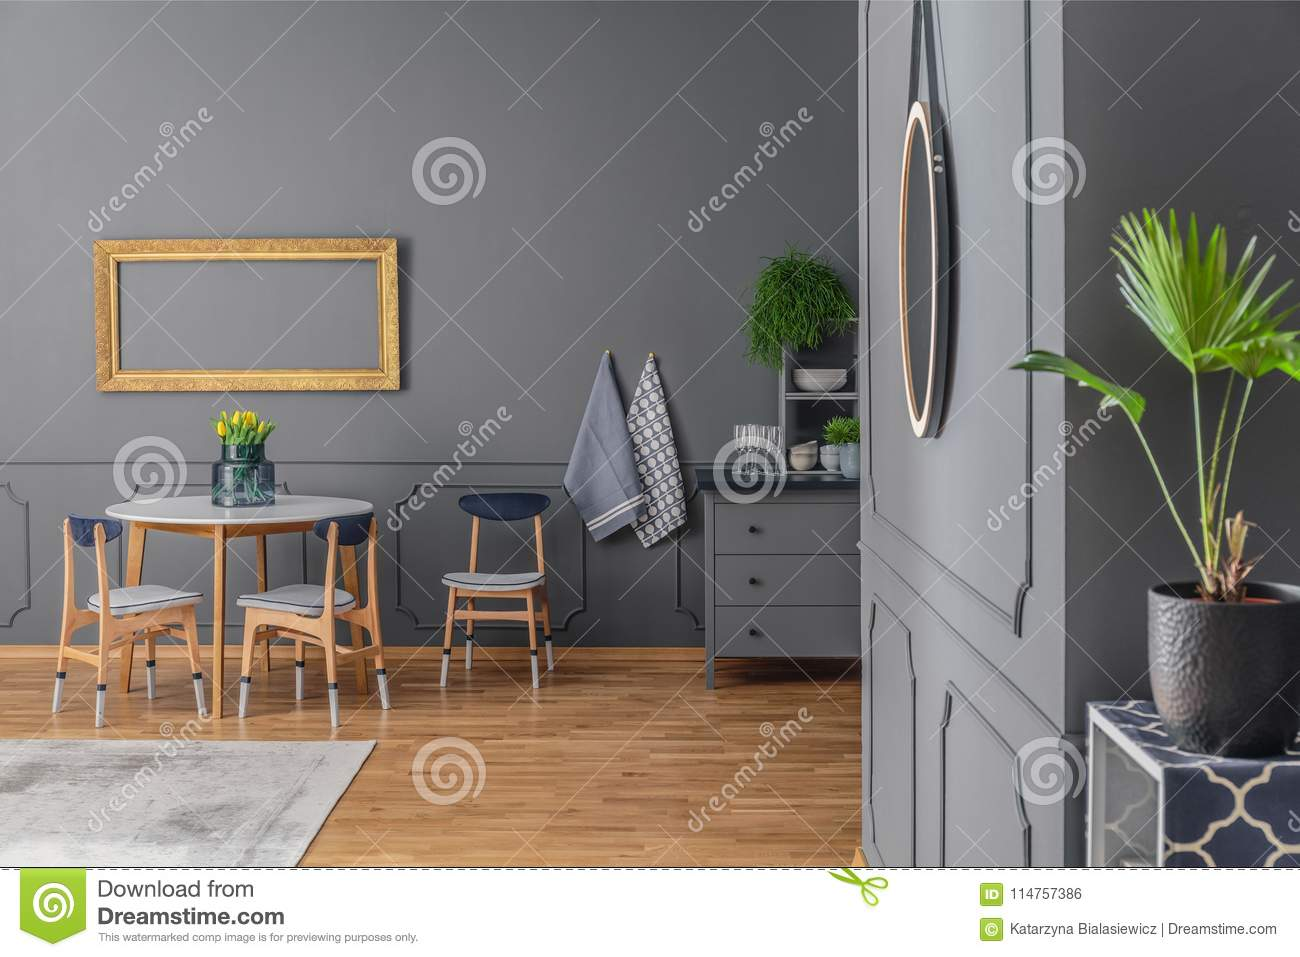 A Dining Room Interior With Grey Walls Wooden Floor Table Chairs And Gold Frame